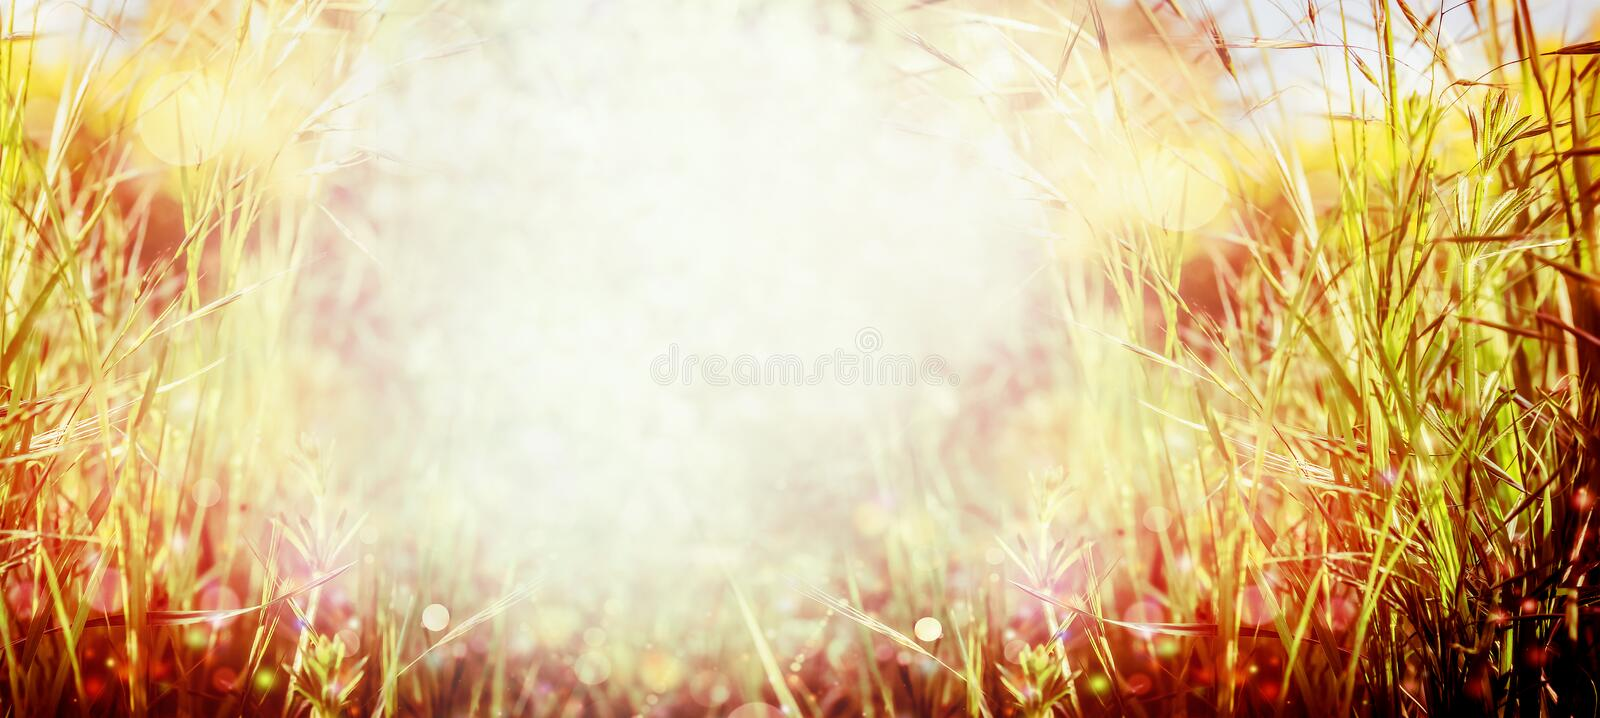 Sunset grass nature background. Summer or autumn meadow. Banner stock photo